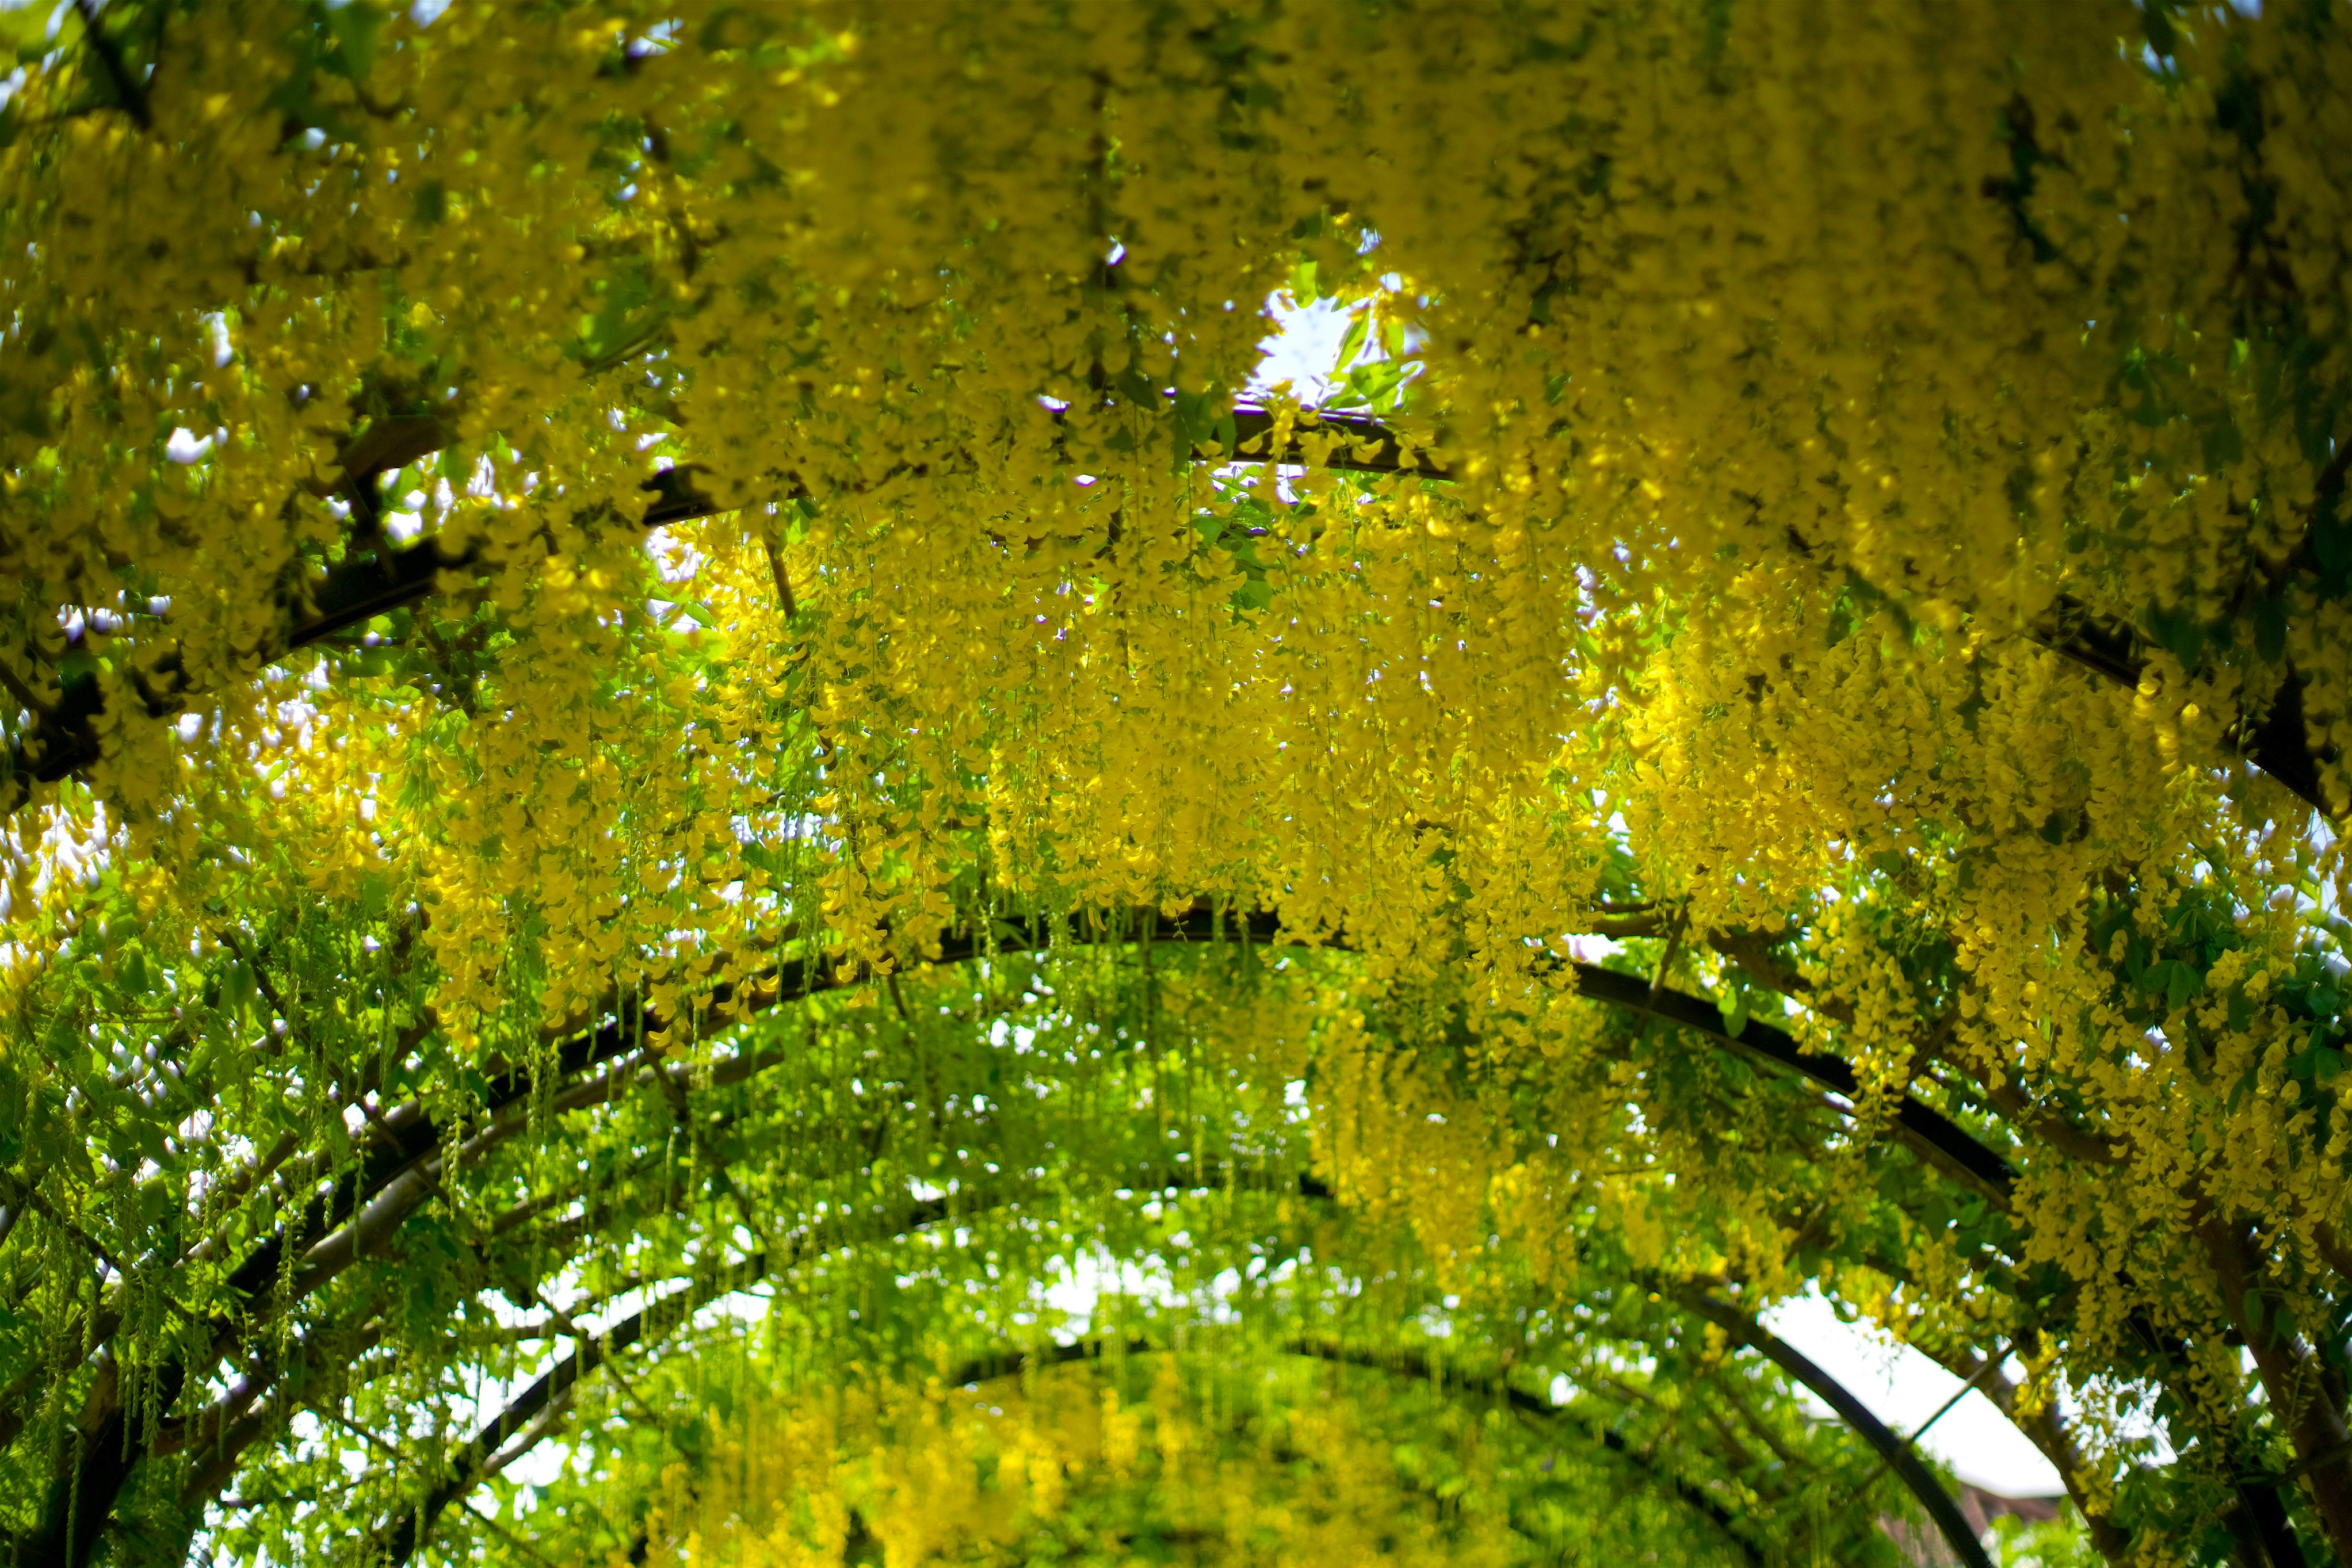 Golden yellow petals of the laburnum pergola